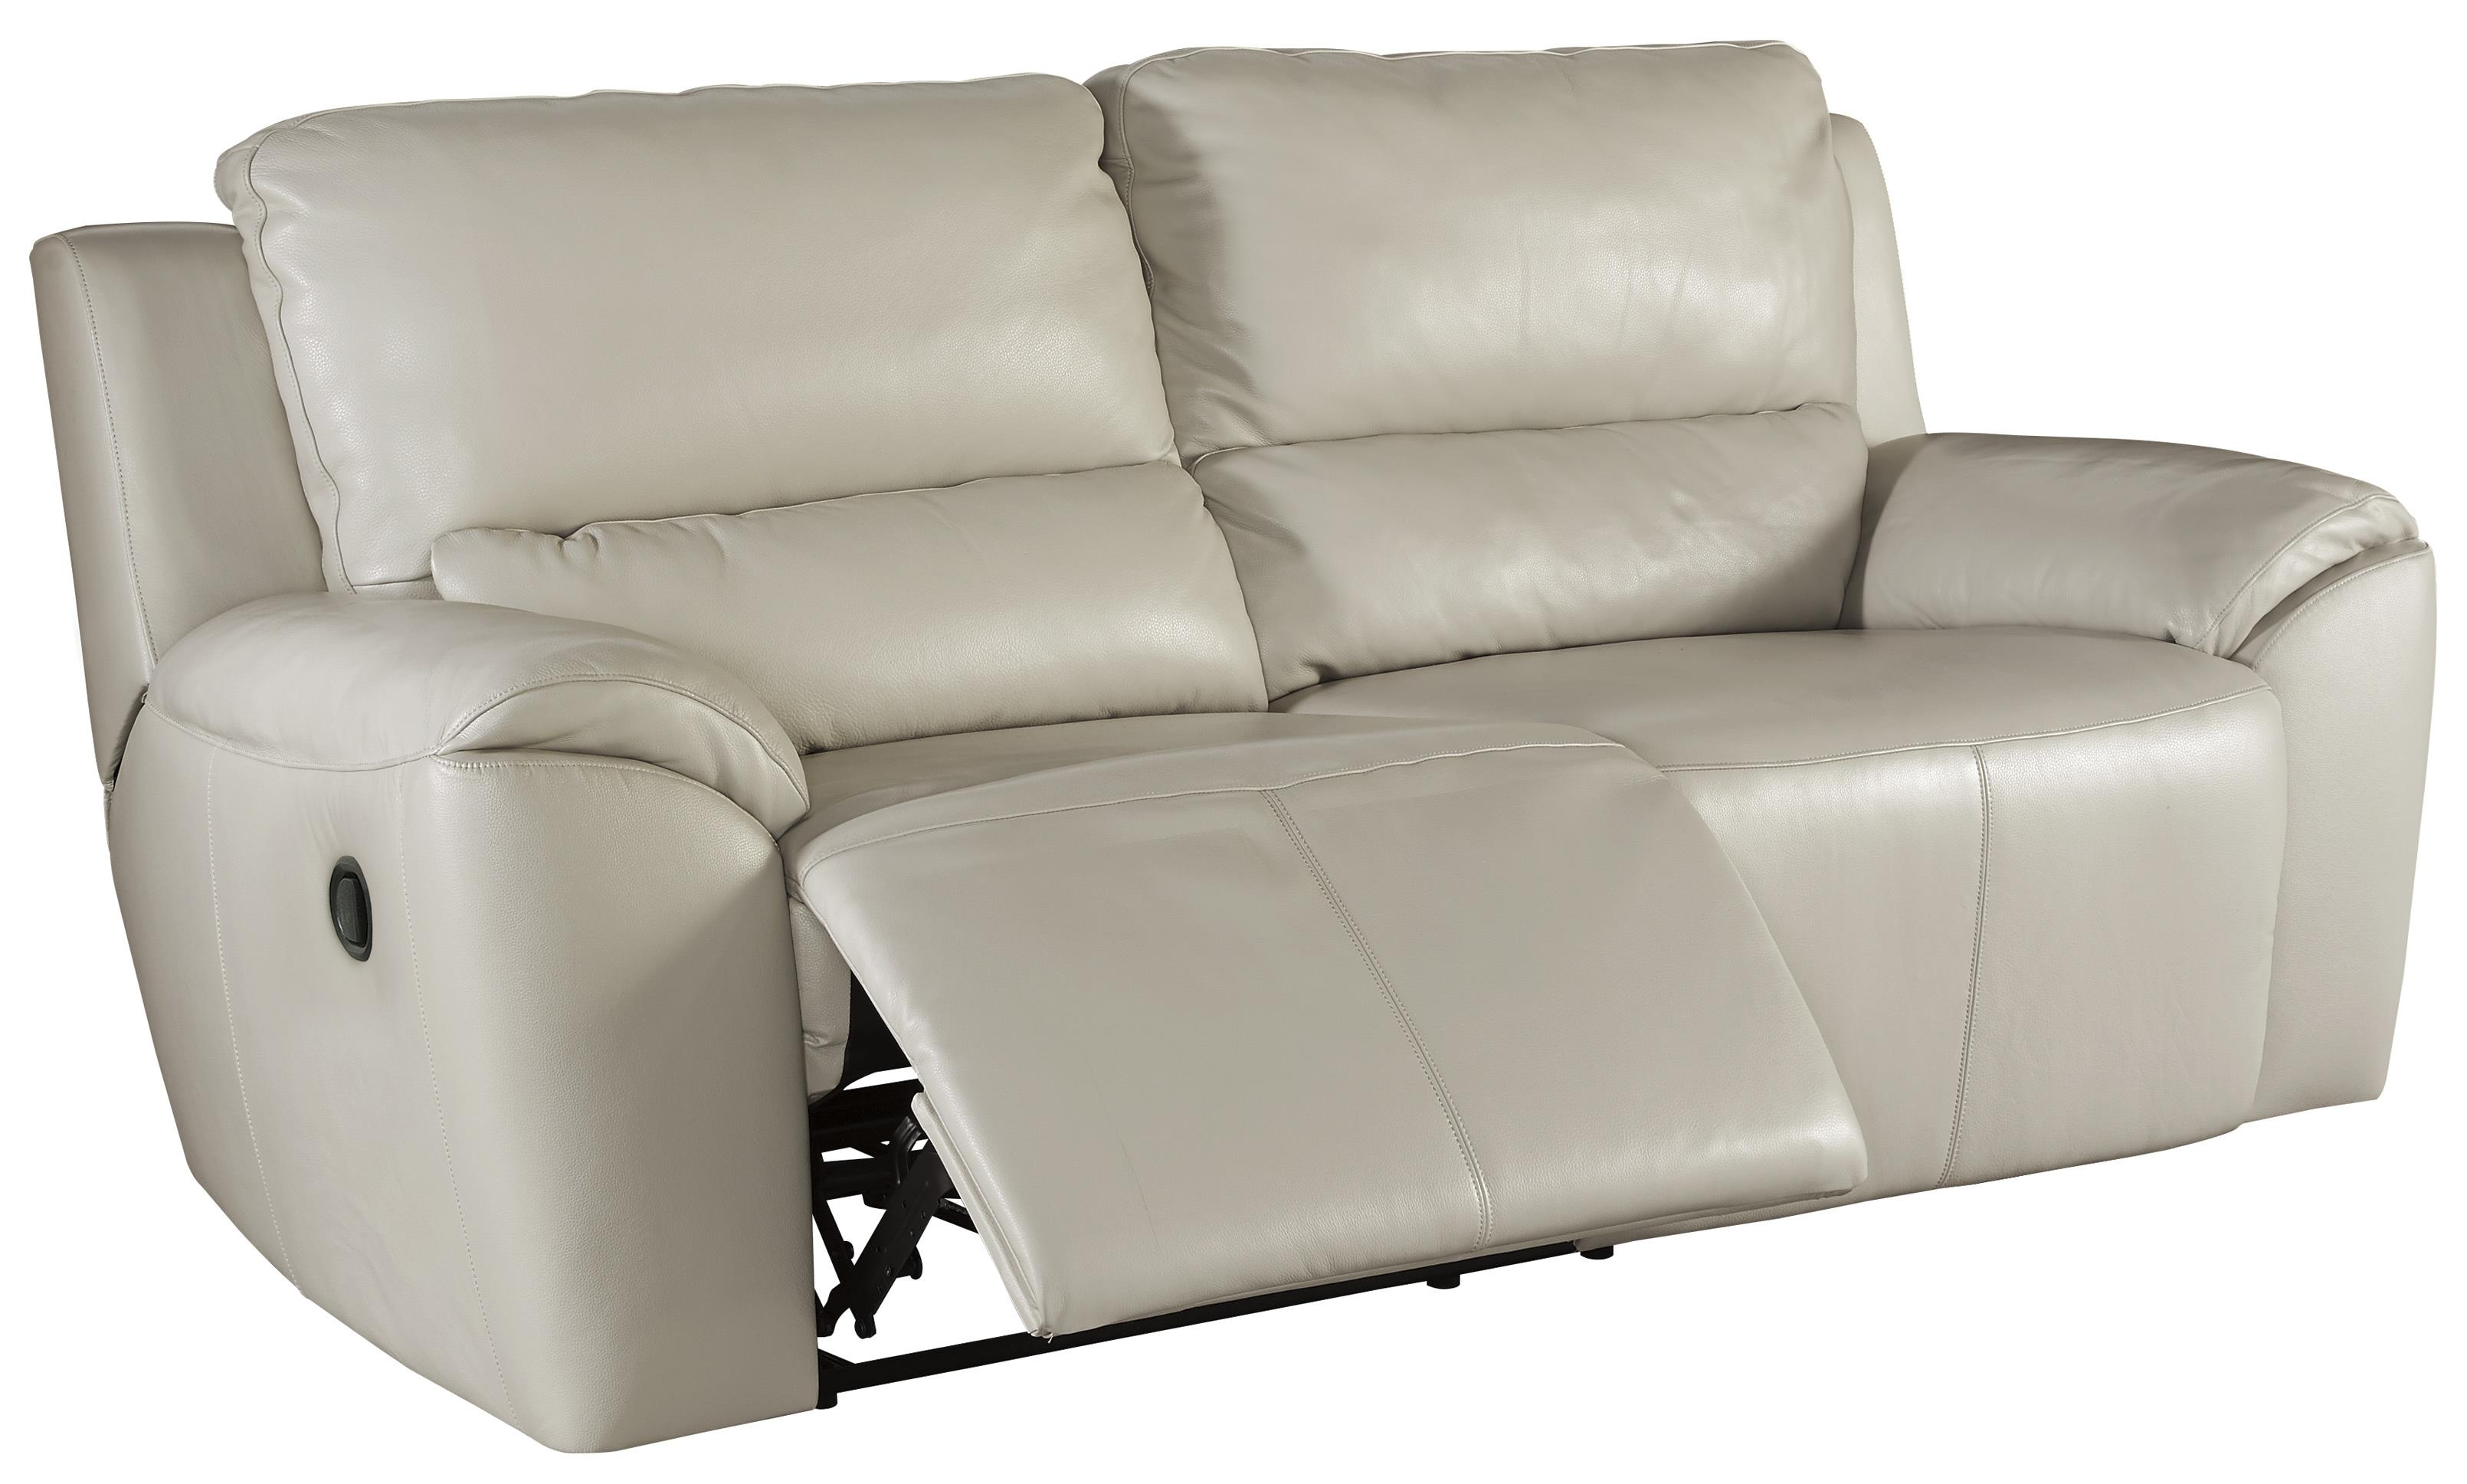 Contemporary Leather Match 2 Seat Reclining Sofa